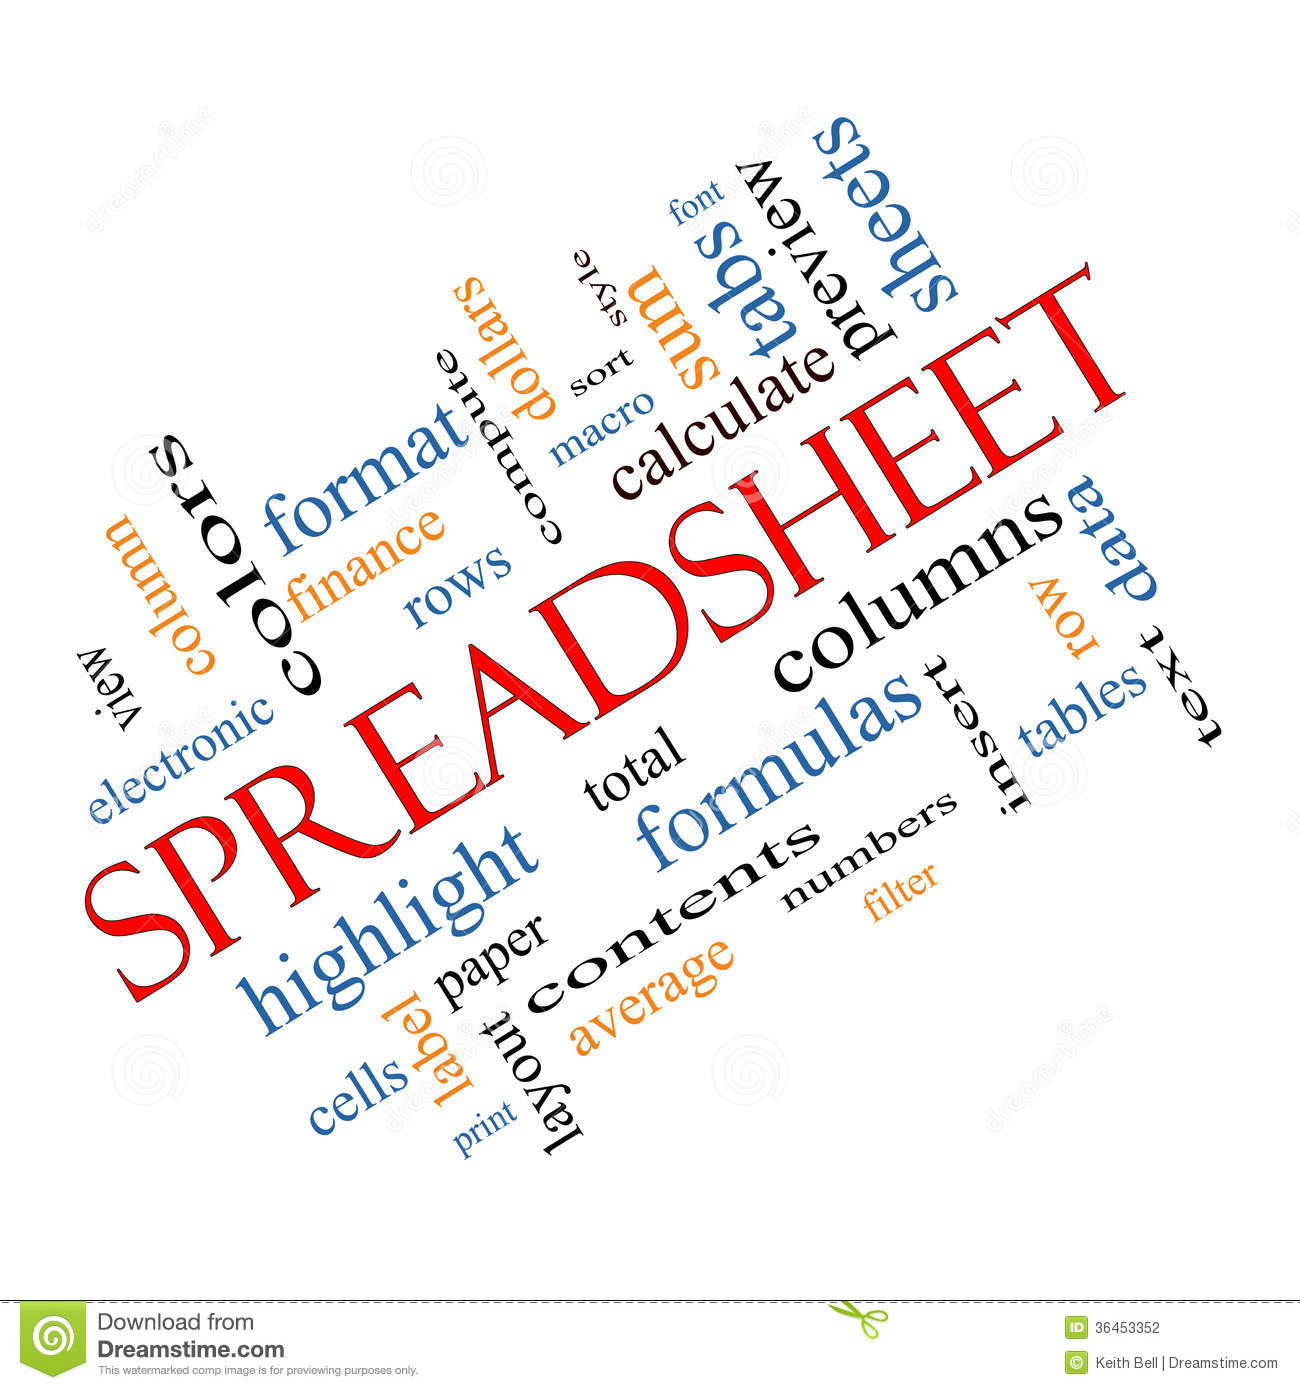 Spreadsheet Computer Stock Images, Royalty-Free Images & Vectors